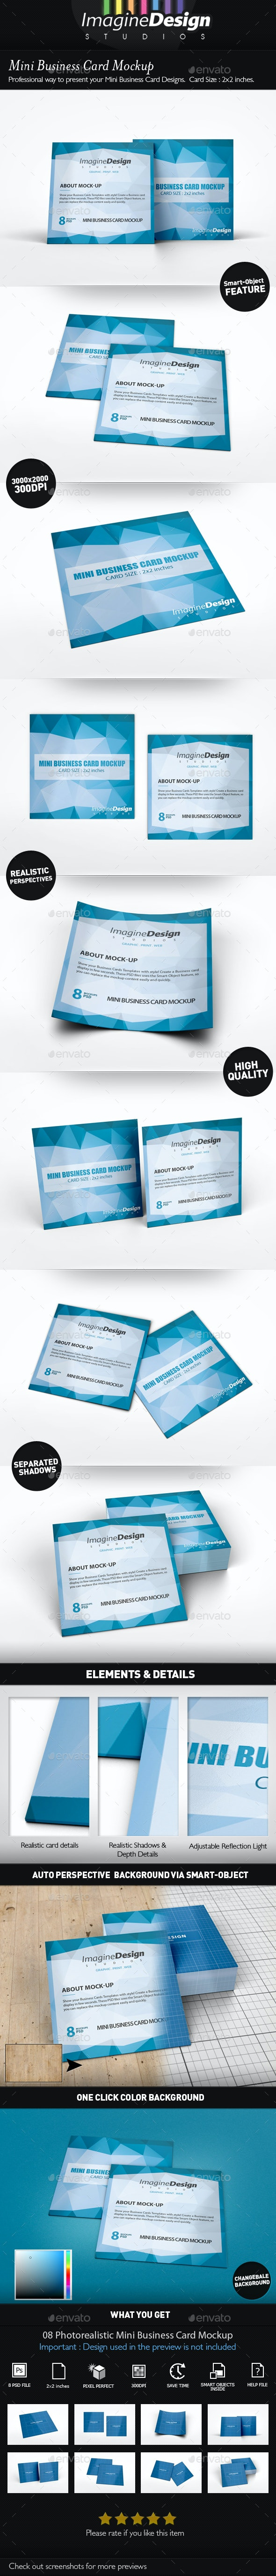 Mini Business Card Mockup - Business Cards Print